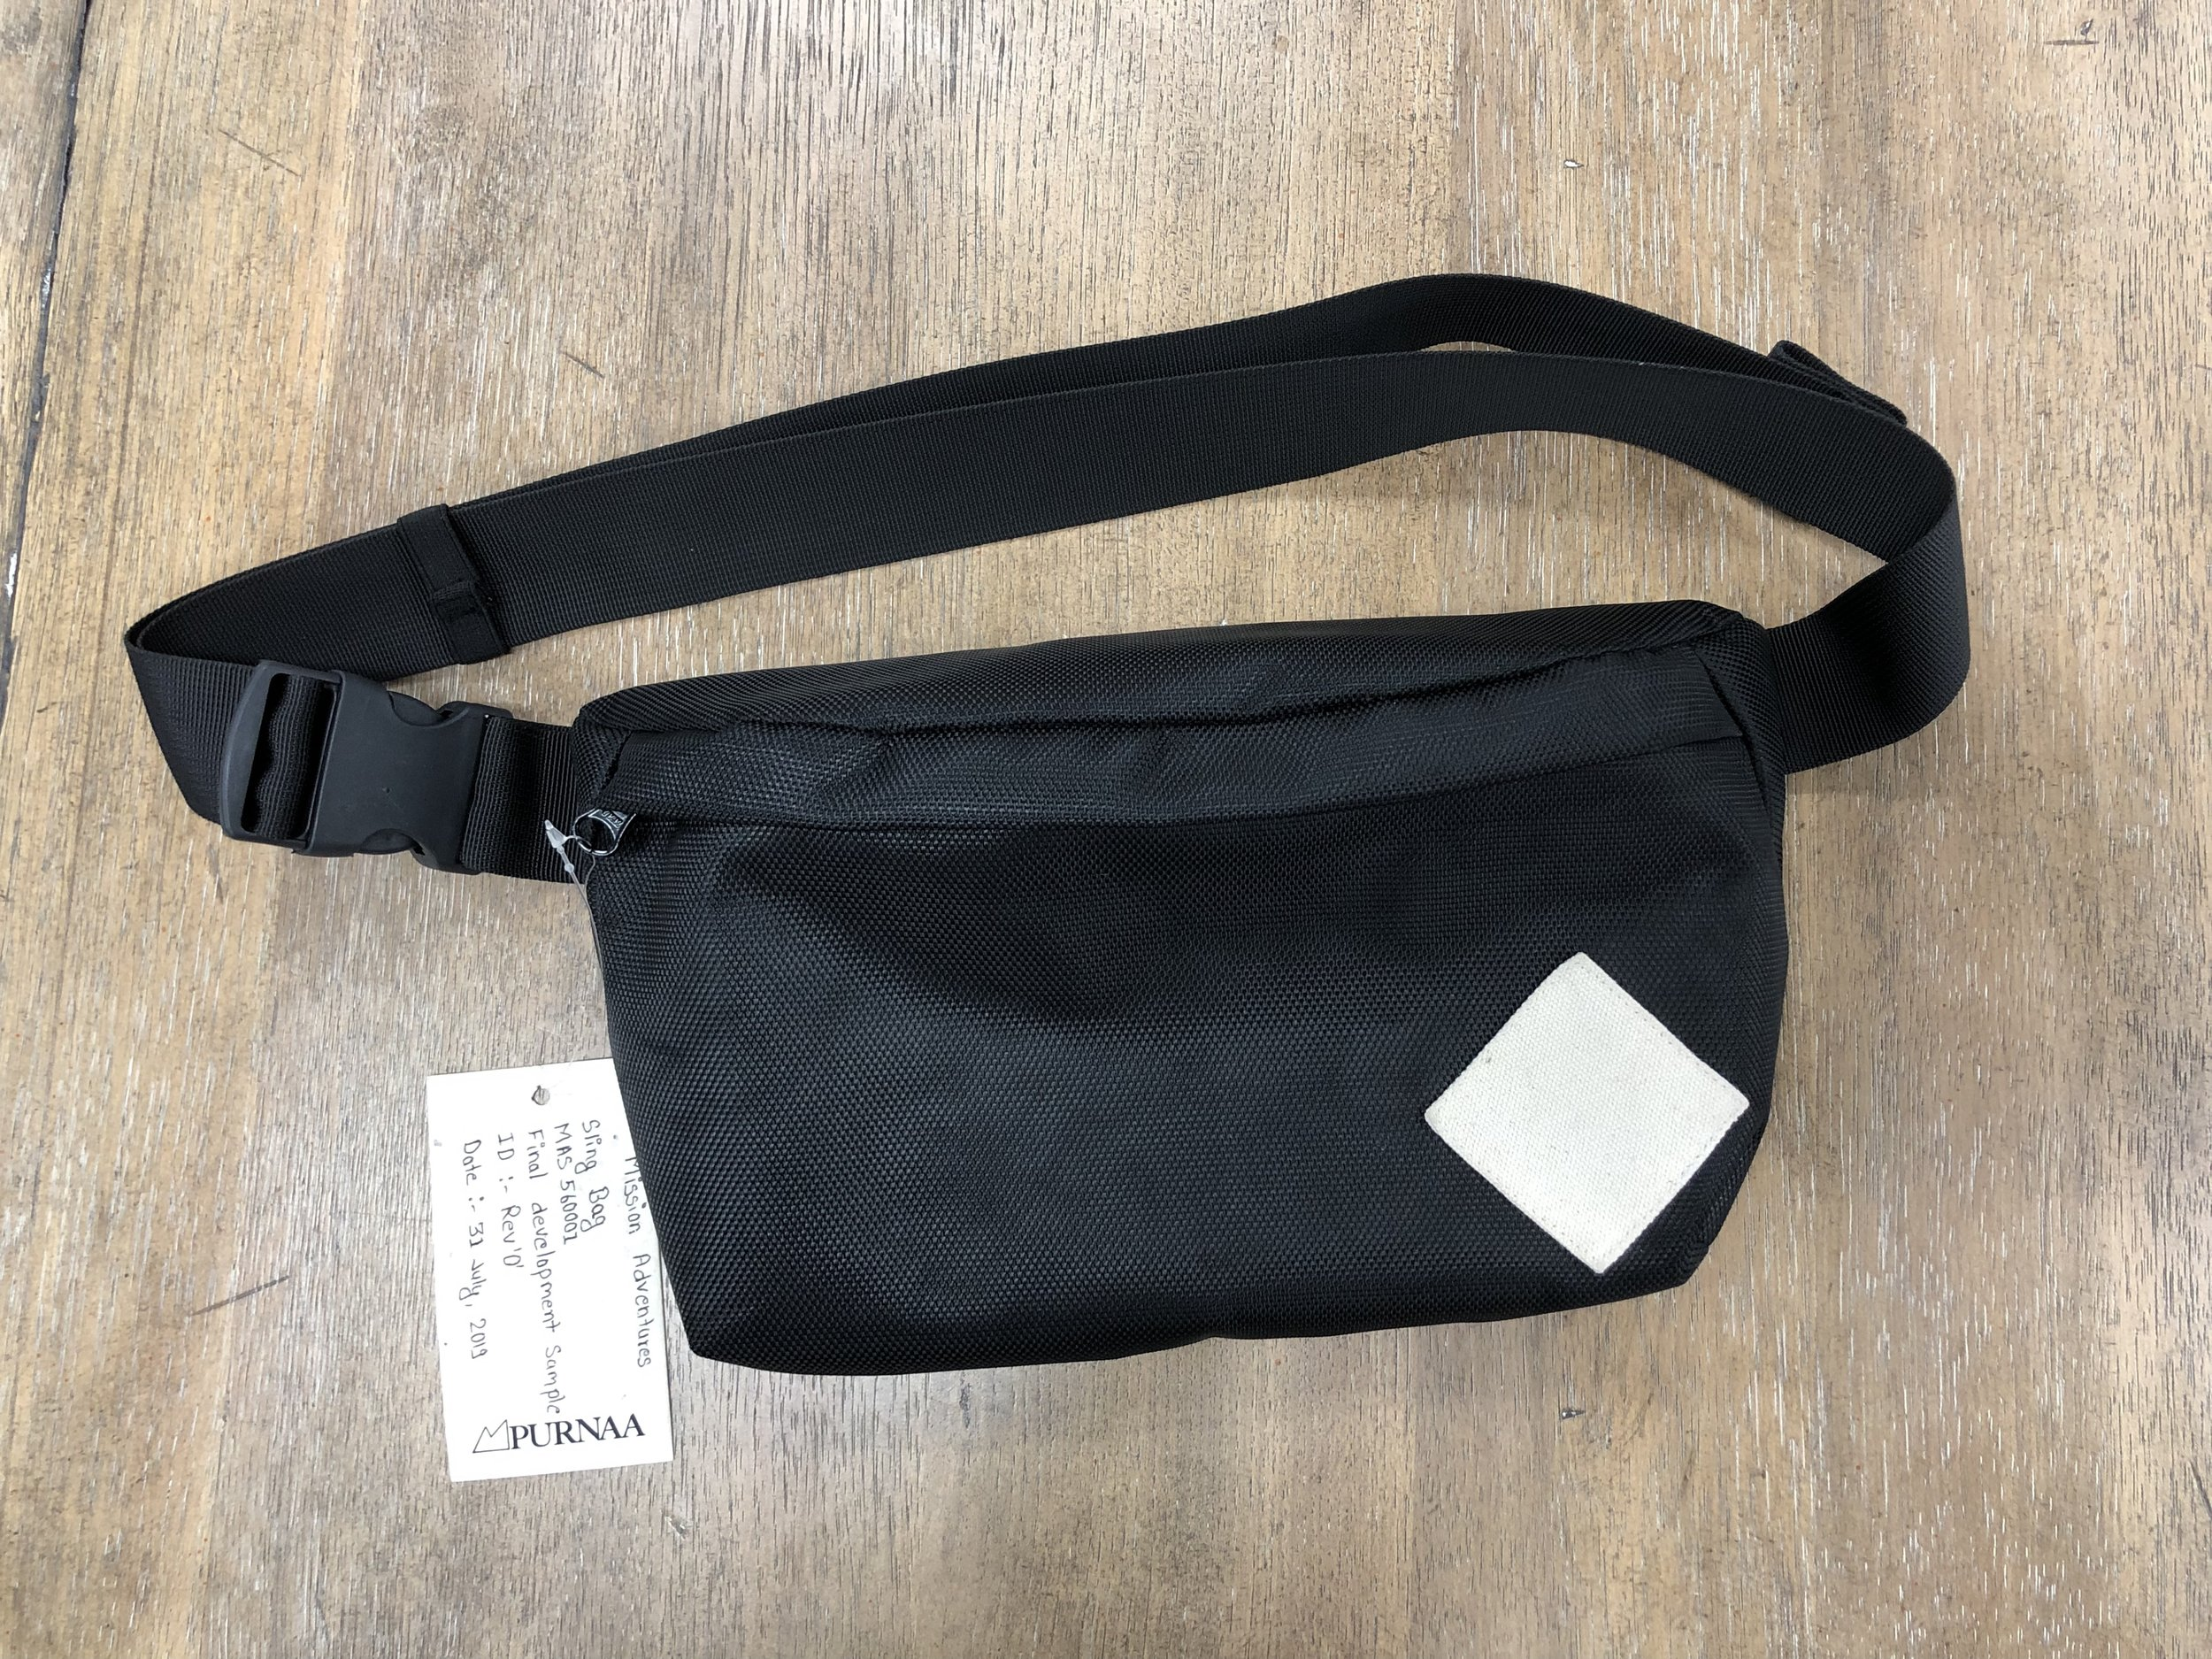 """This prototype appears to be a """"sling bag"""" and would be worn either around the waist or over the shoulder. Note the high quality fabric. Approximately 12 in. wide, by 6 in. tall, by 3 in. deep."""